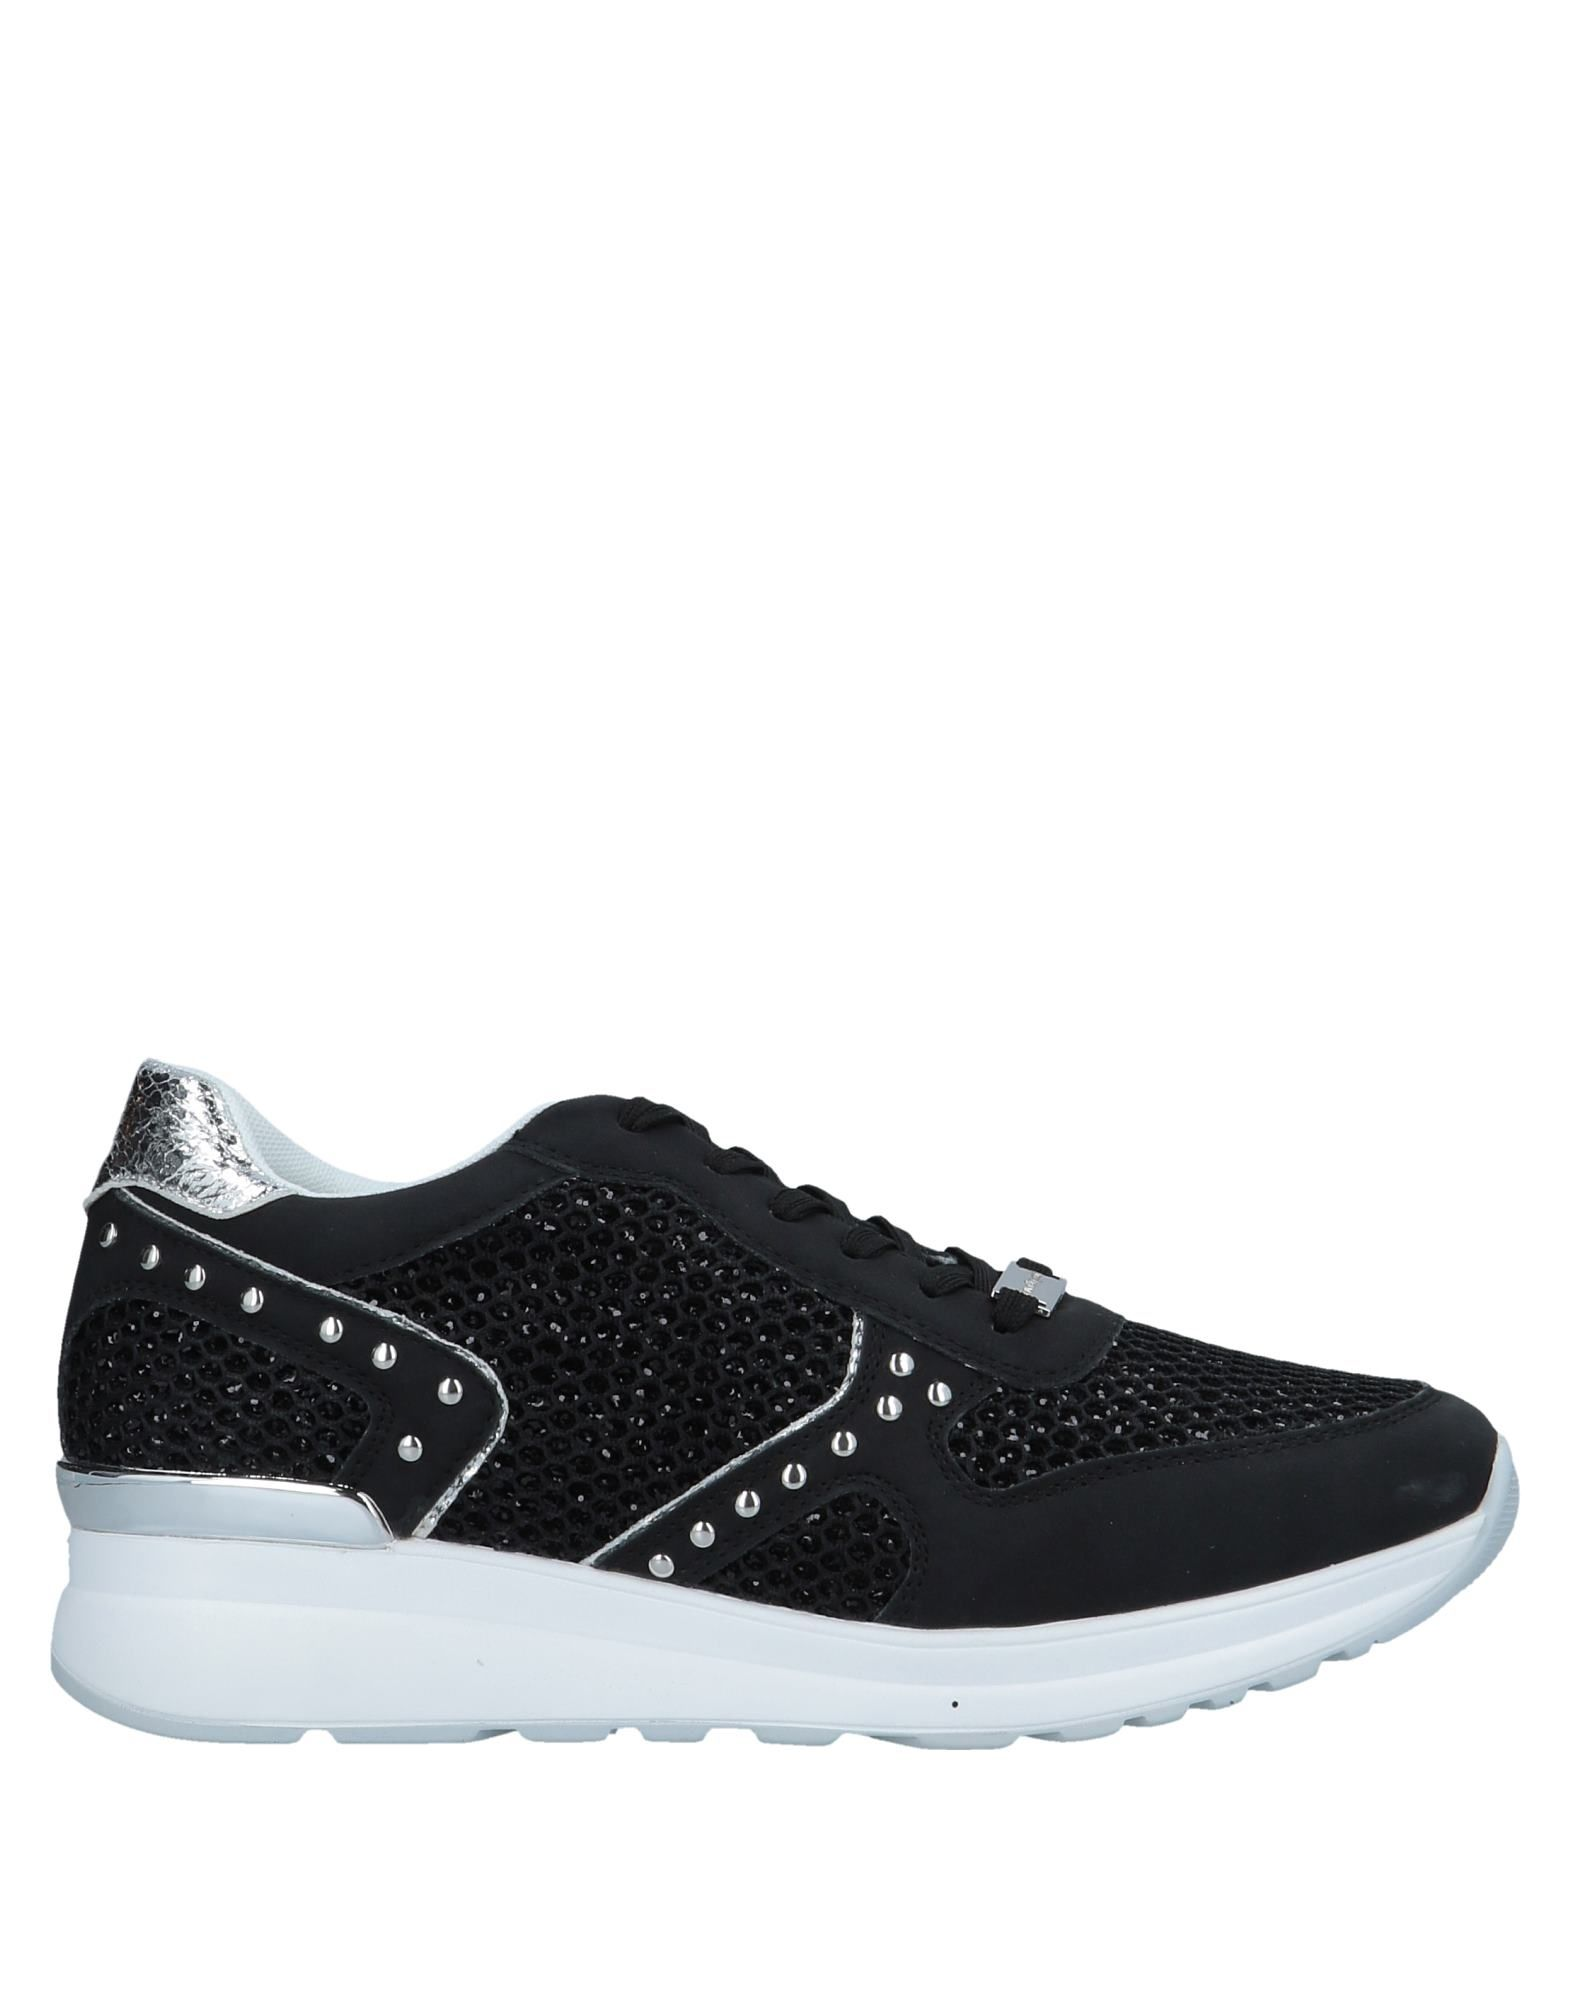 Laura Biagiotti Sneakers - Women Laura Biagiotti Sneakers - online on  Australia - Sneakers 11571306FW e6af99